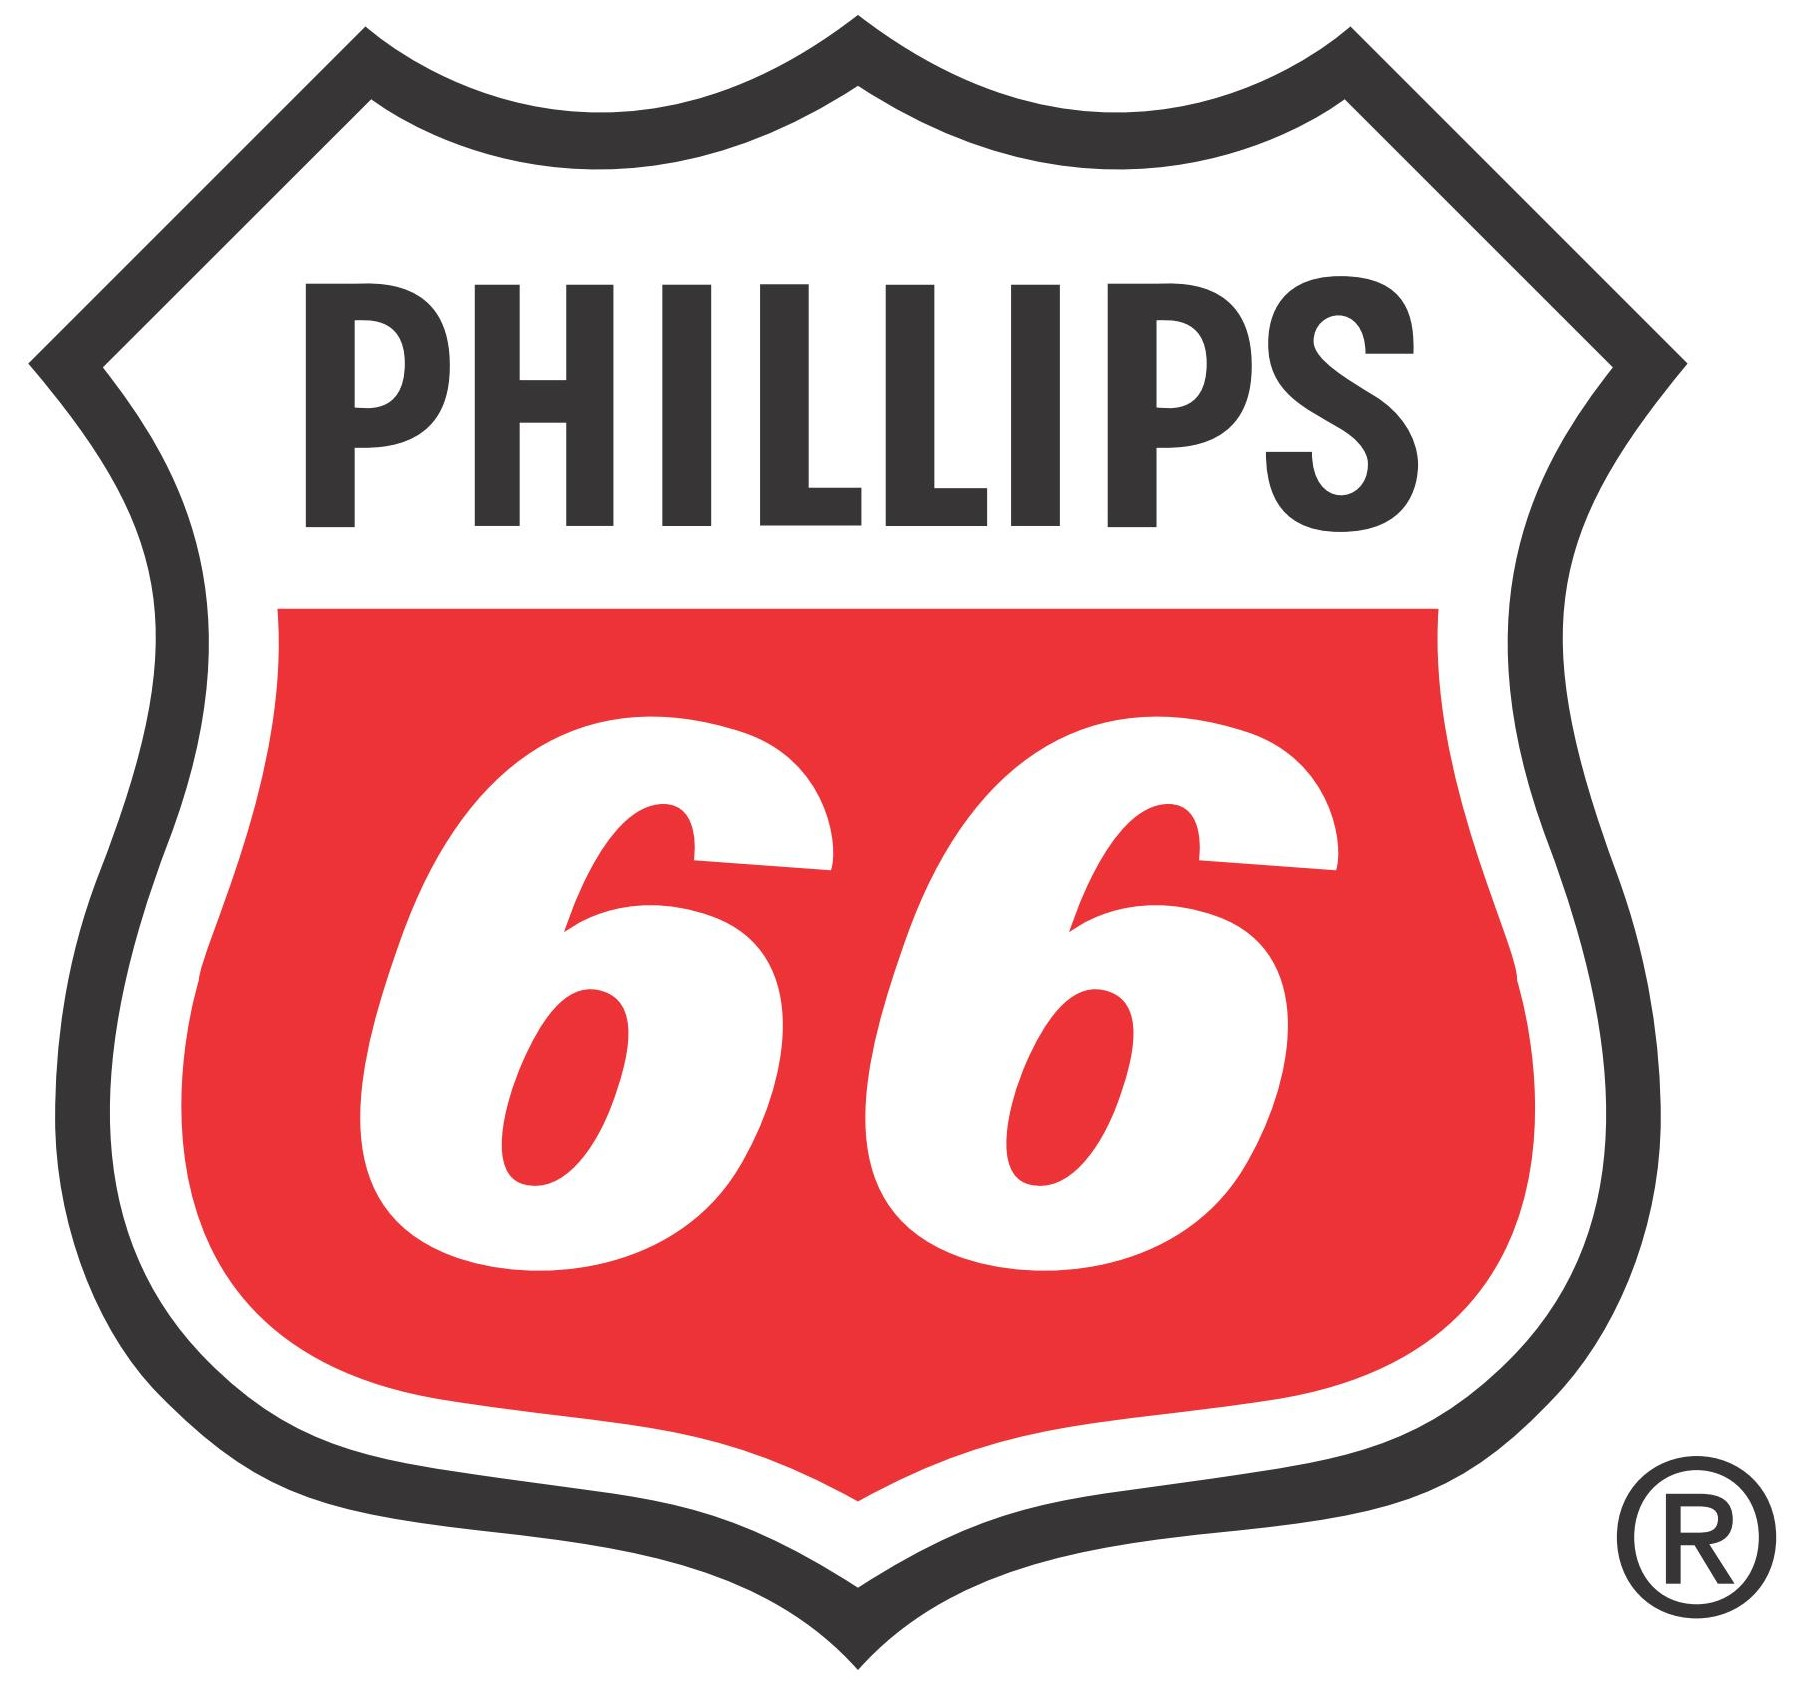 Philips 66 logo